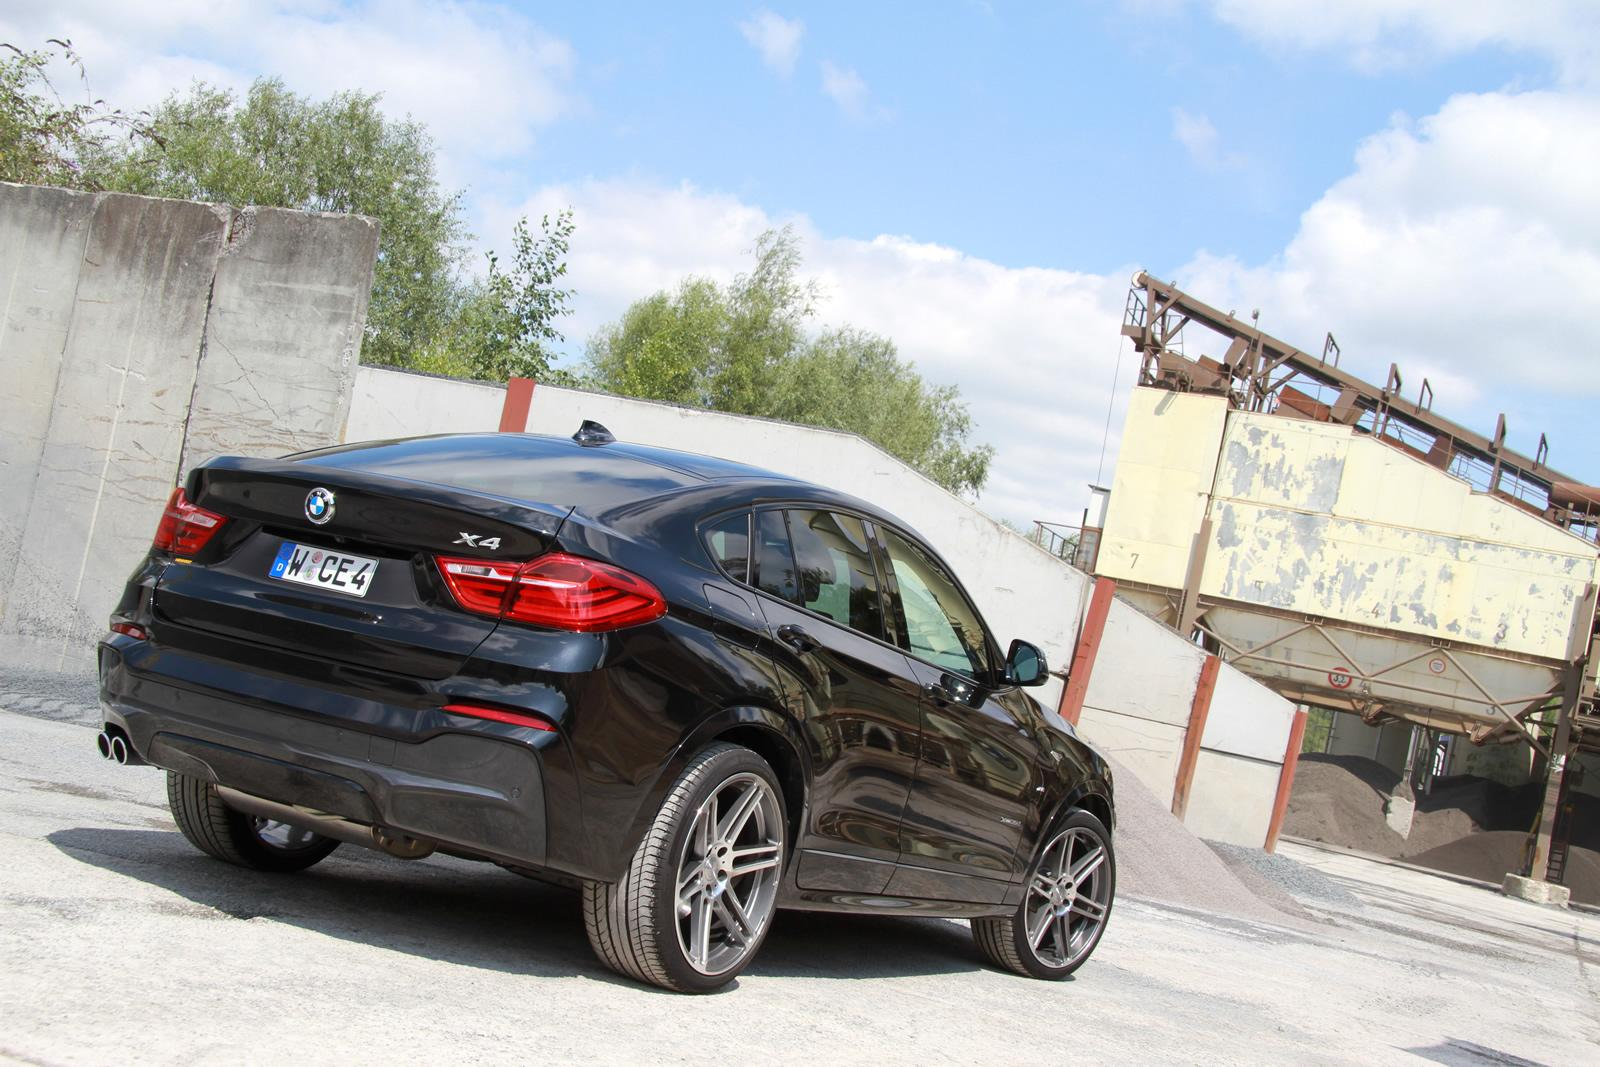 Manhart S Upgrade For The Bmw X4 Xdrive35i Takes It Up To 370 Hp Autoevolution